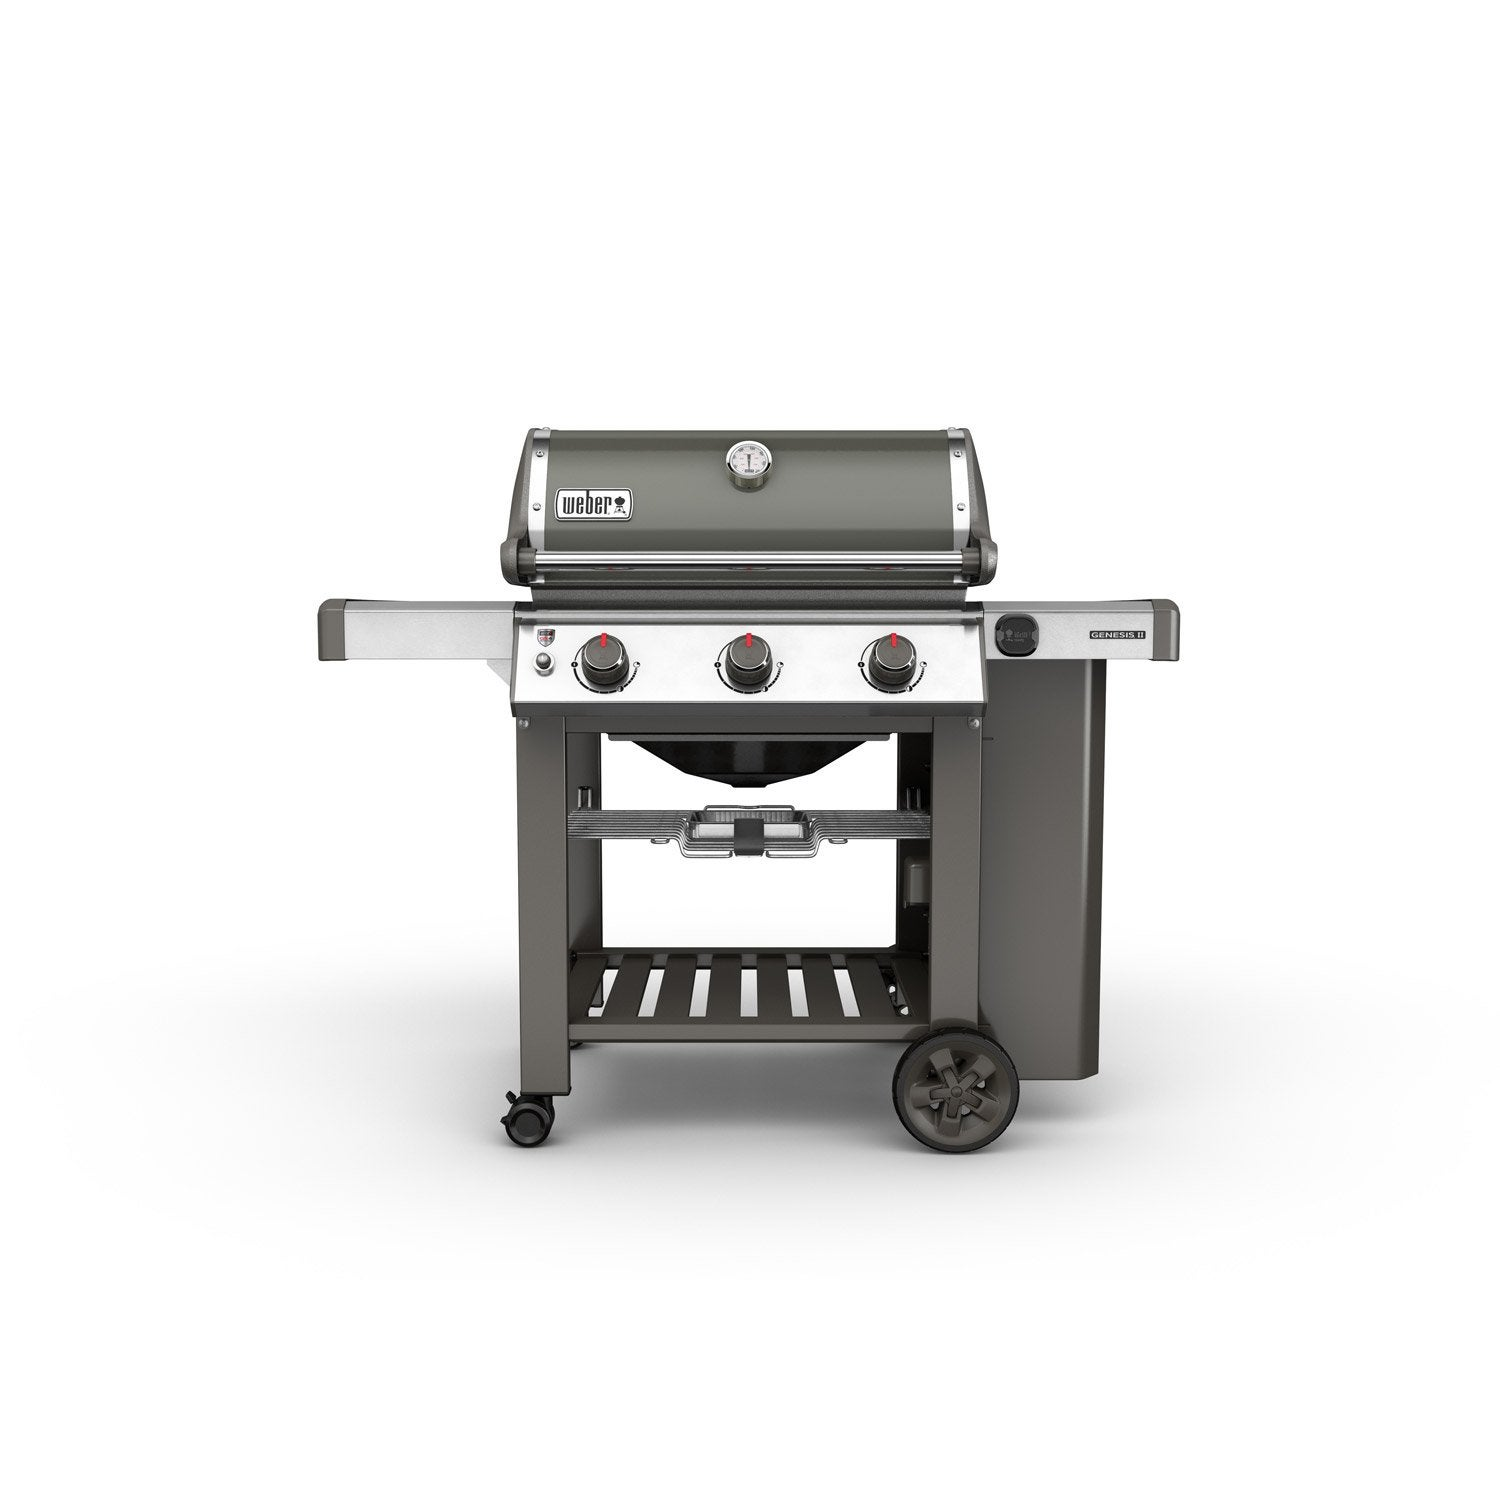 Barbecue au gaz weber genesis 2 e310 gris leroy merlin for Barbecue a gaz leroy merlin